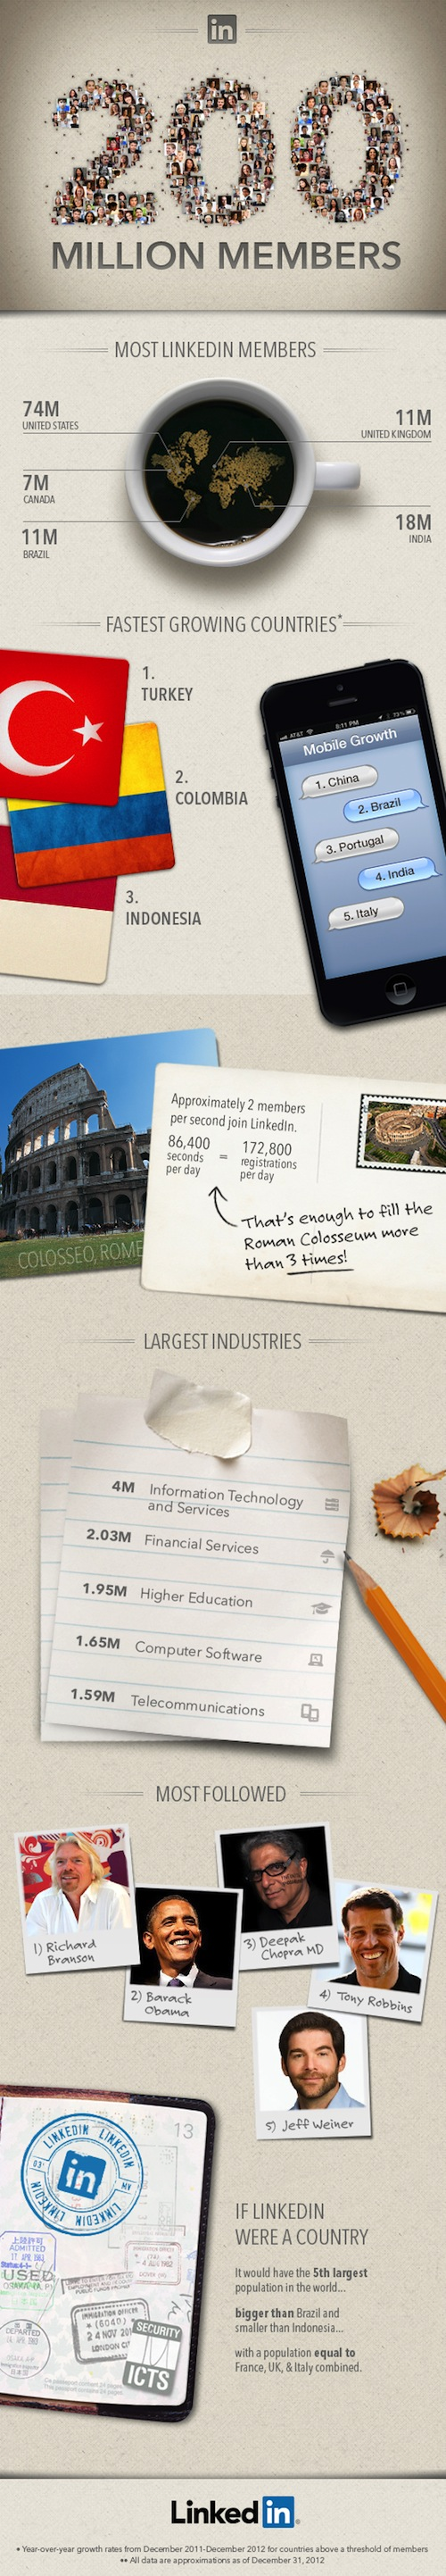 linkedin-infographic-200-million